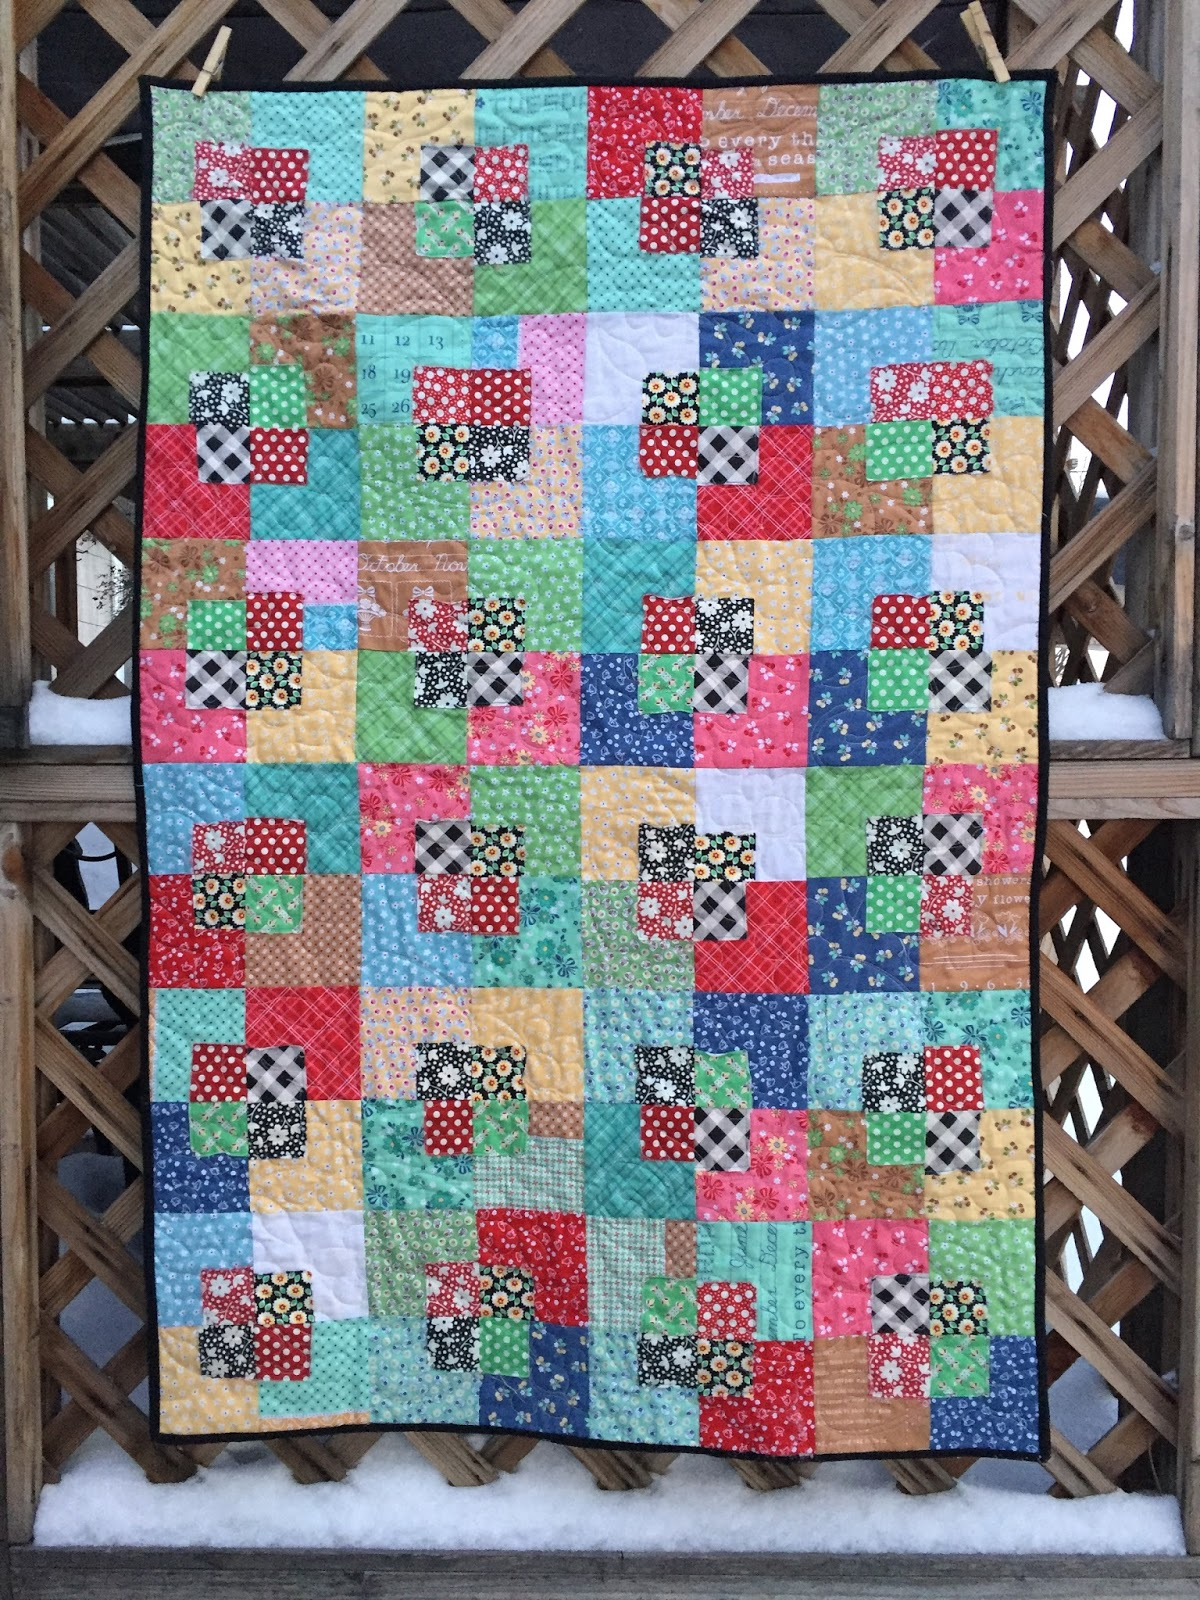 Val's Quilting Studio: Five and Dime Quilt Finish : five and dime quilt - Adamdwight.com